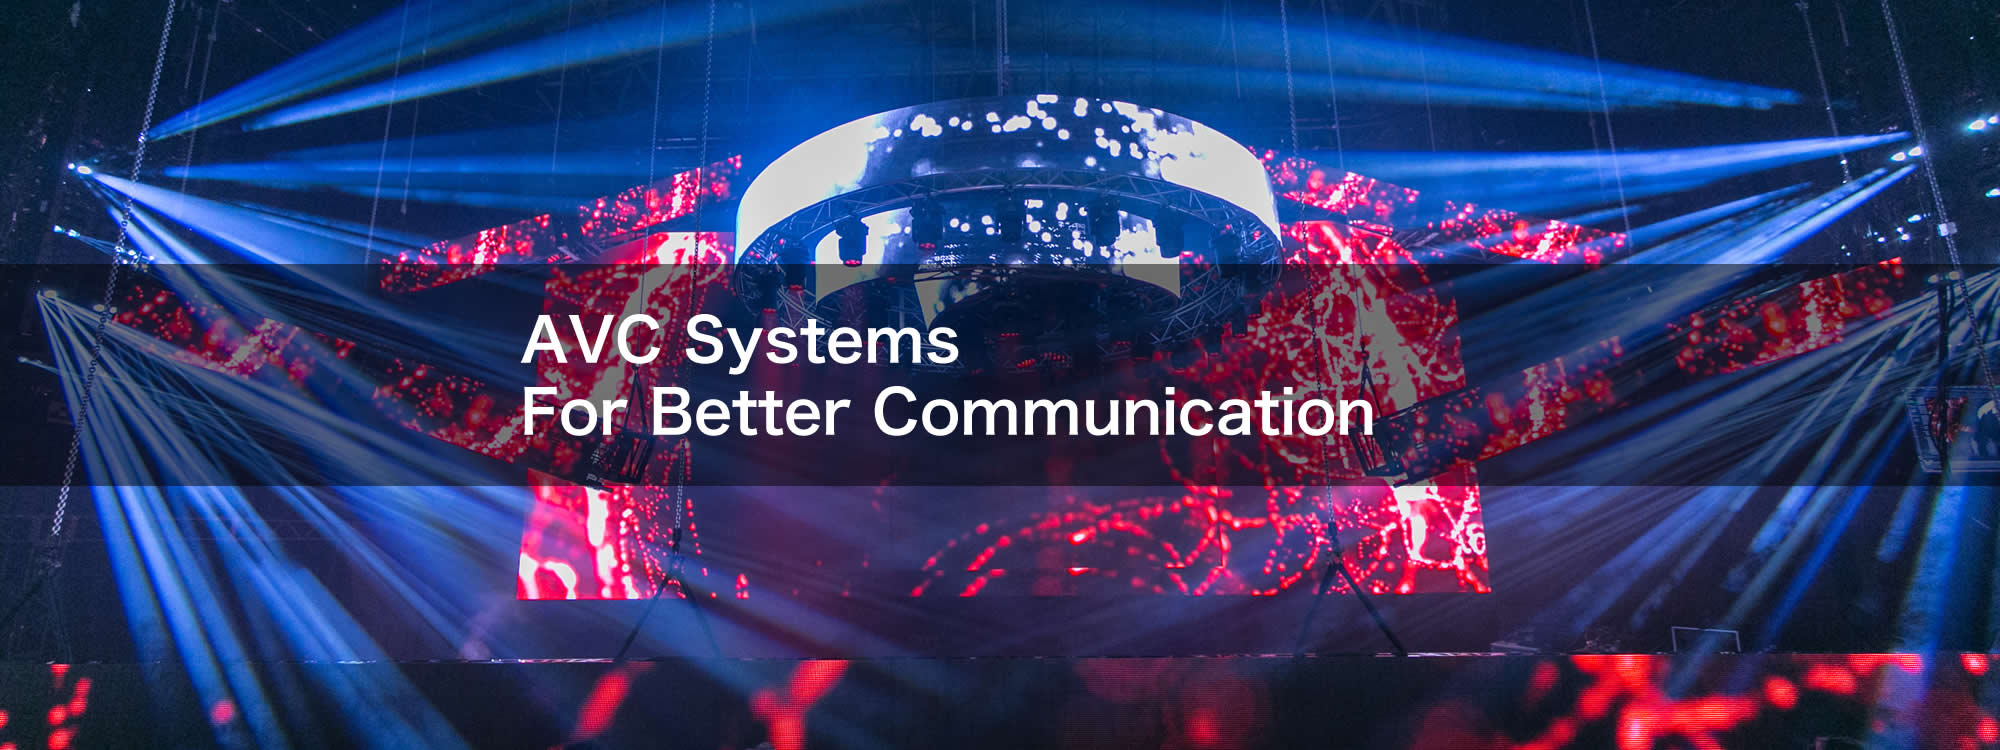 AVC Systems For Better Communication